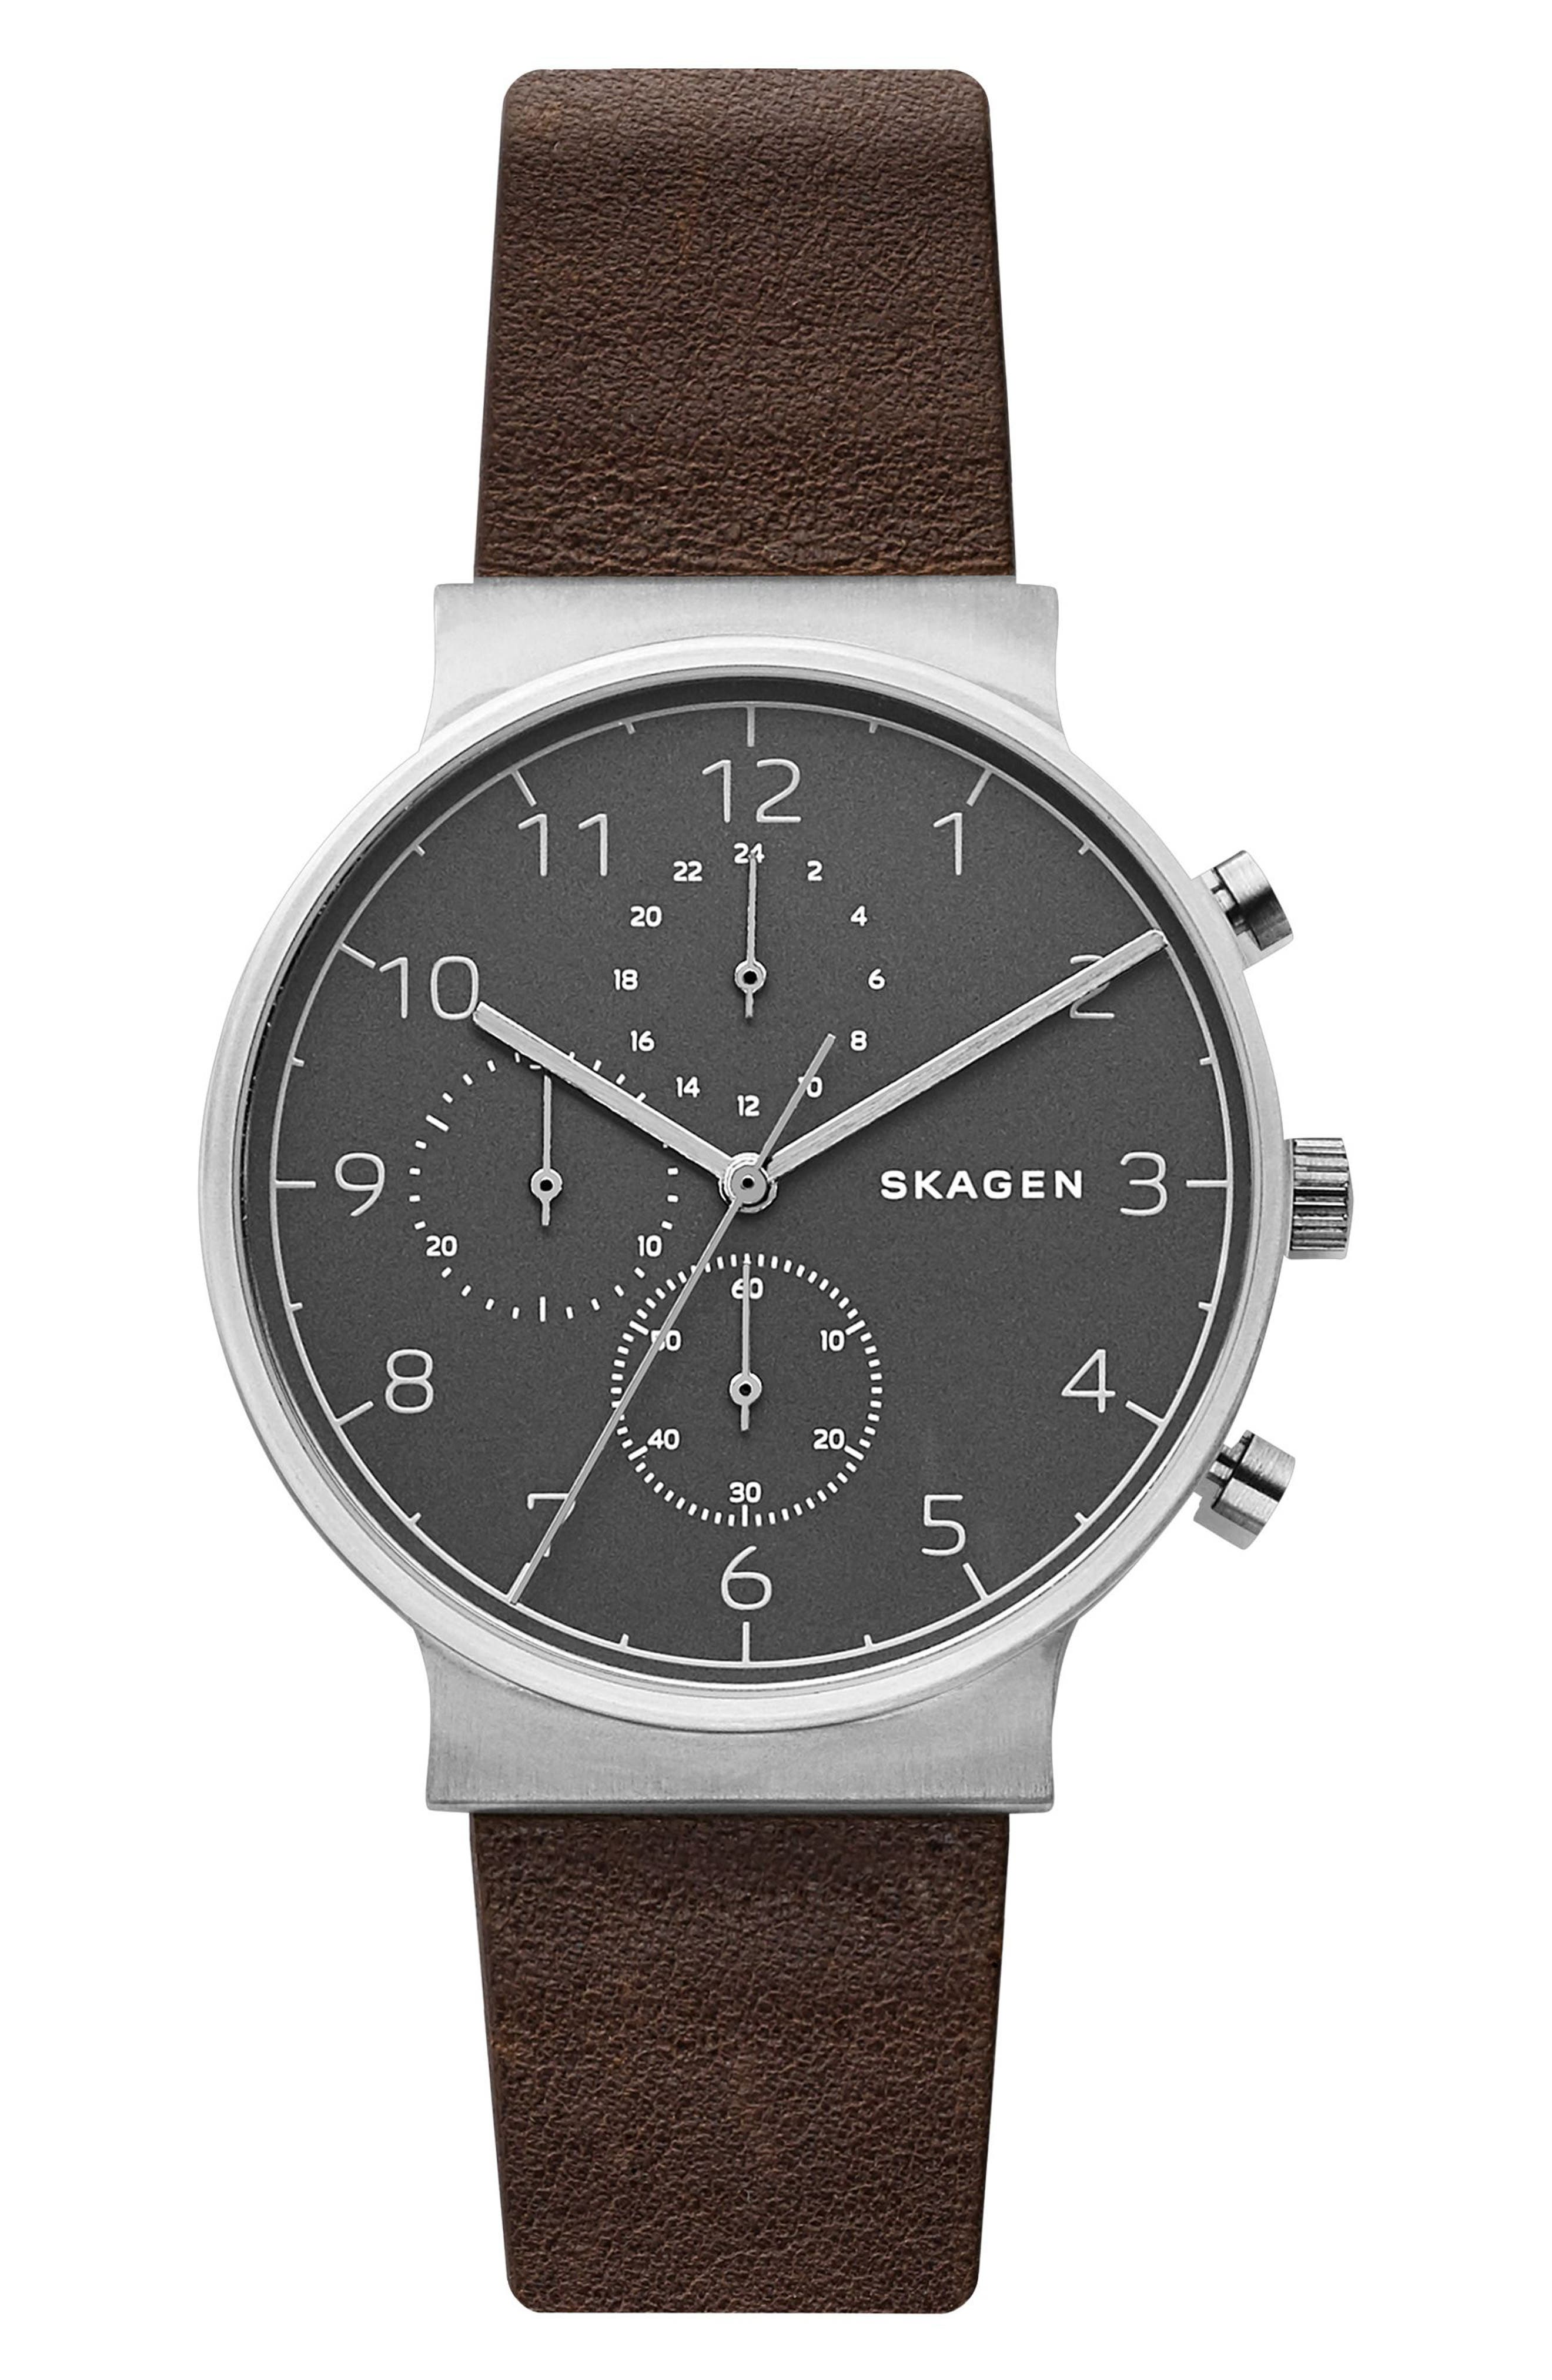 Image of Skagen Men's Ancher Chronograph Leather Strap Watch, 40mm